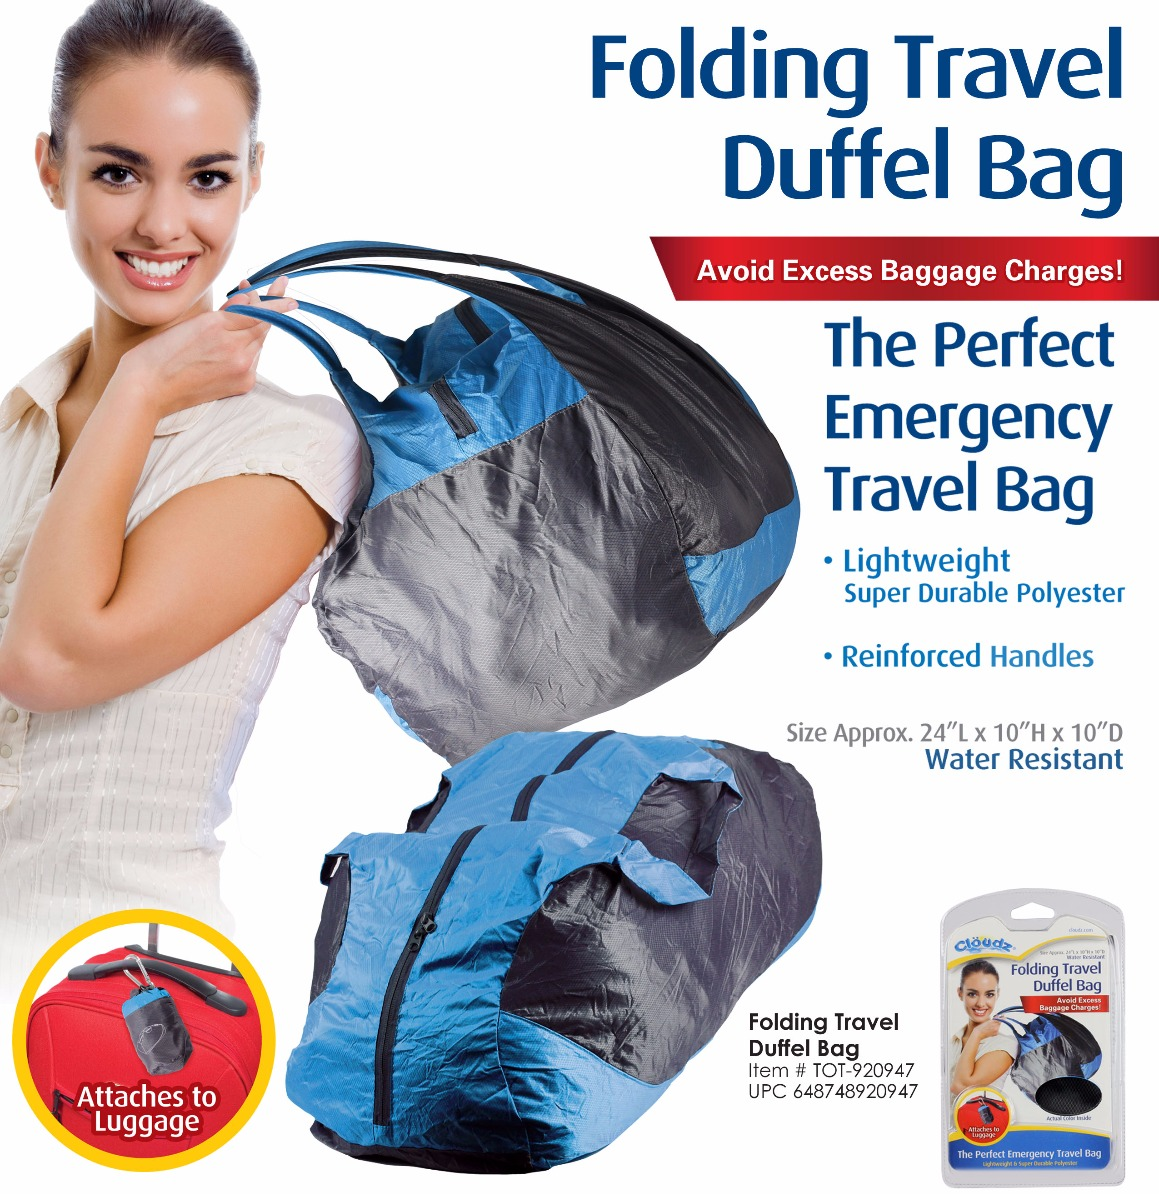 SNI_Today_folding_duffel Bag_edited